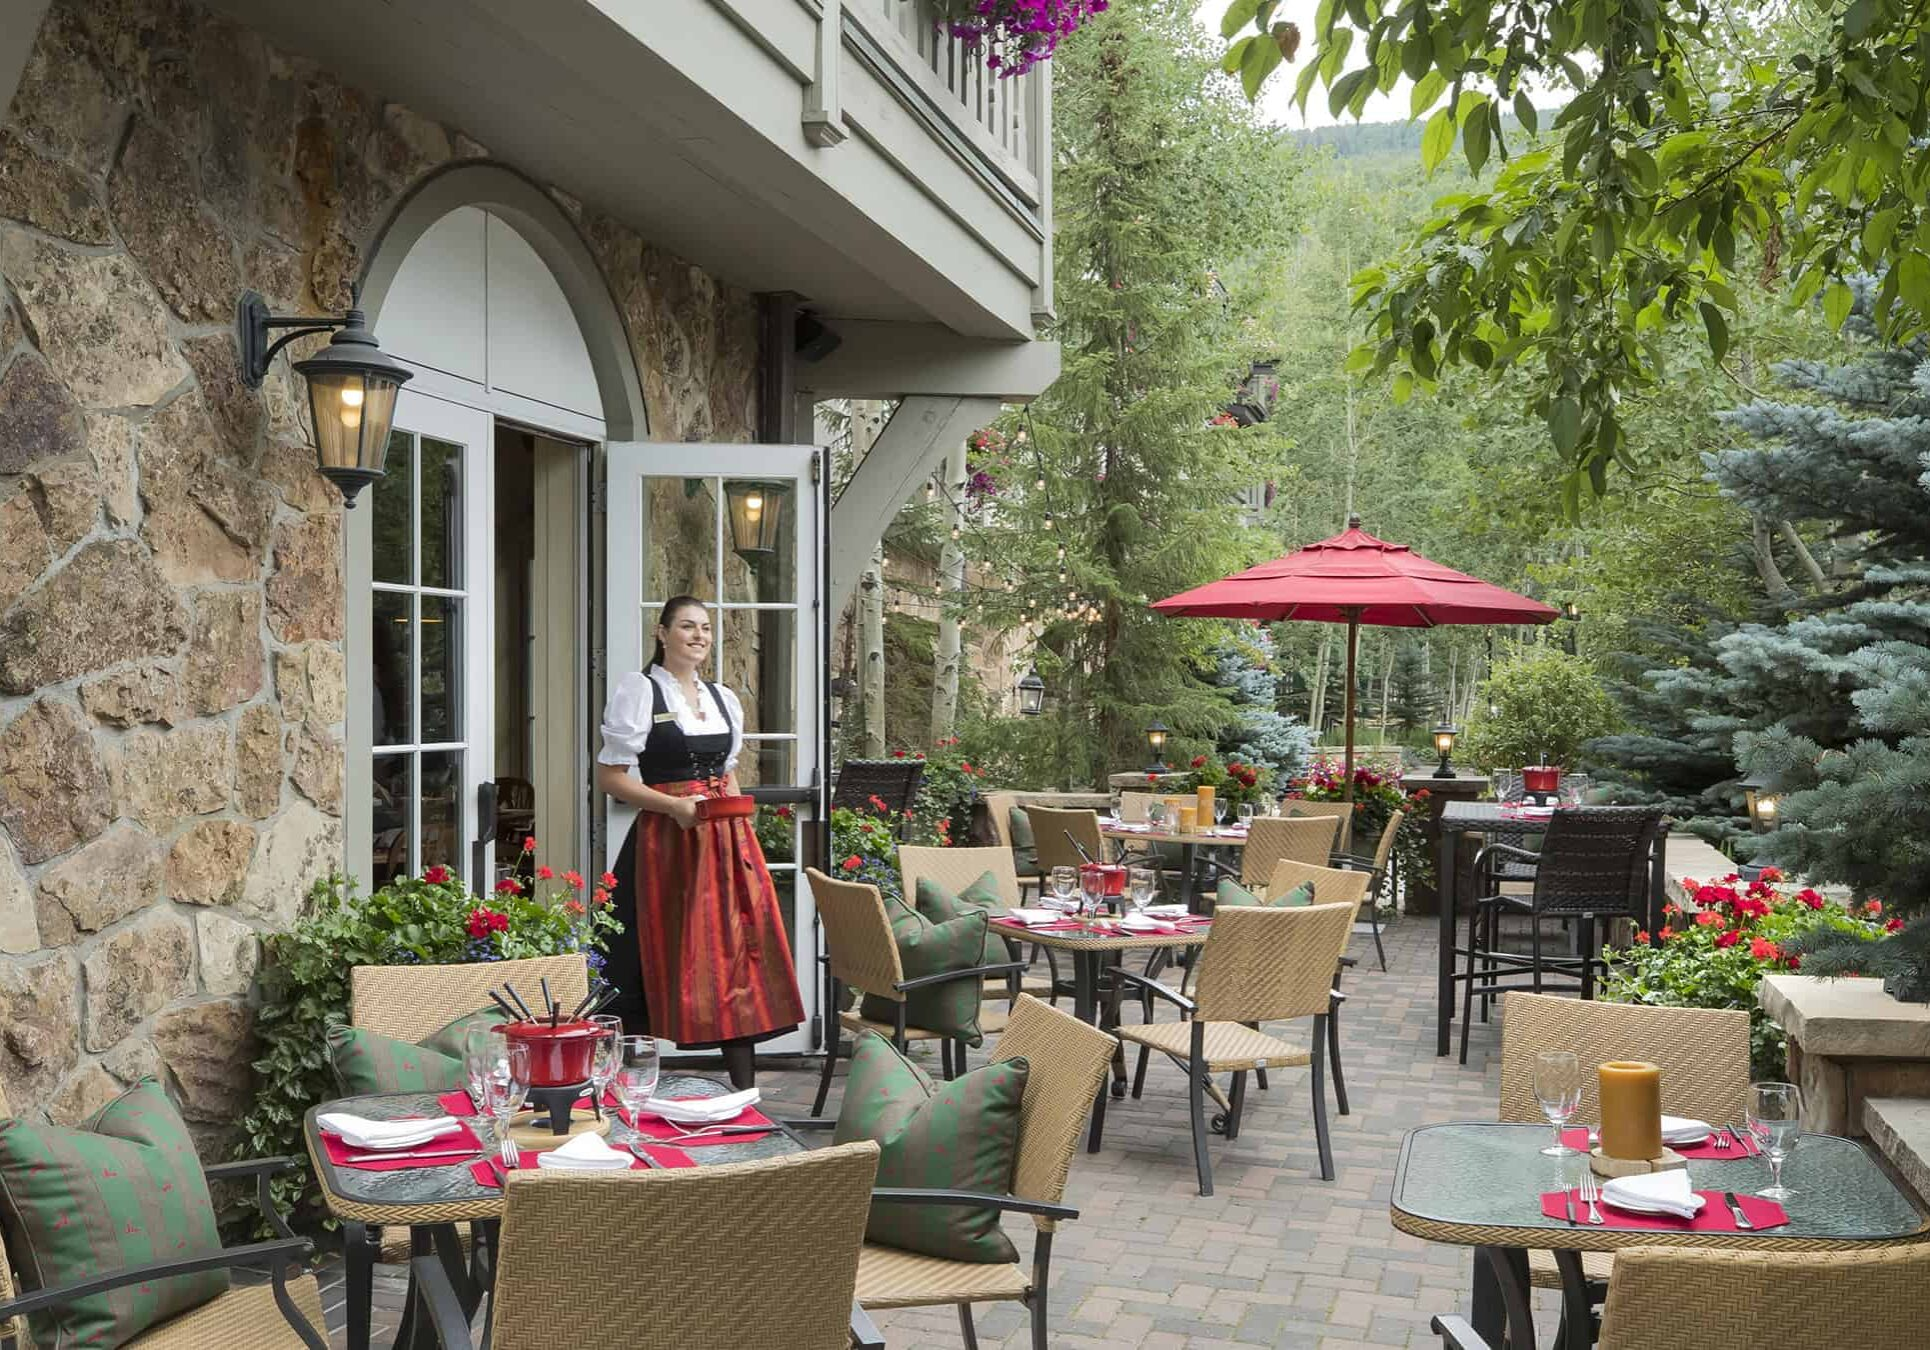 Sonnenalp Swiss Chalet outdoor patio with tables, chairs, and woman wearing dirndl carrying pot